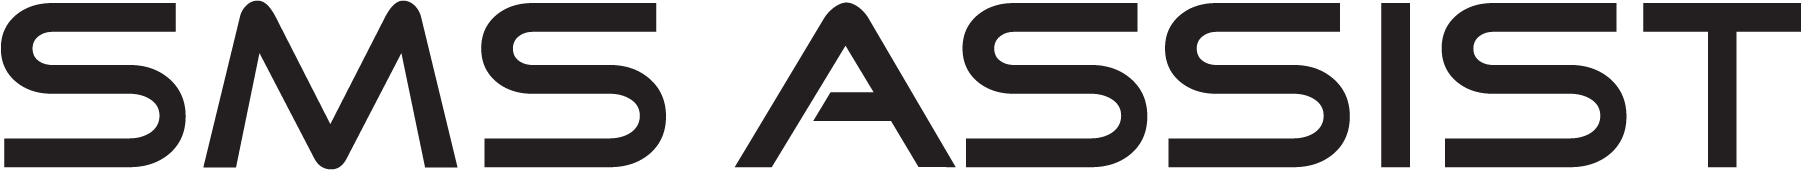 sms-logo-notag-large.png